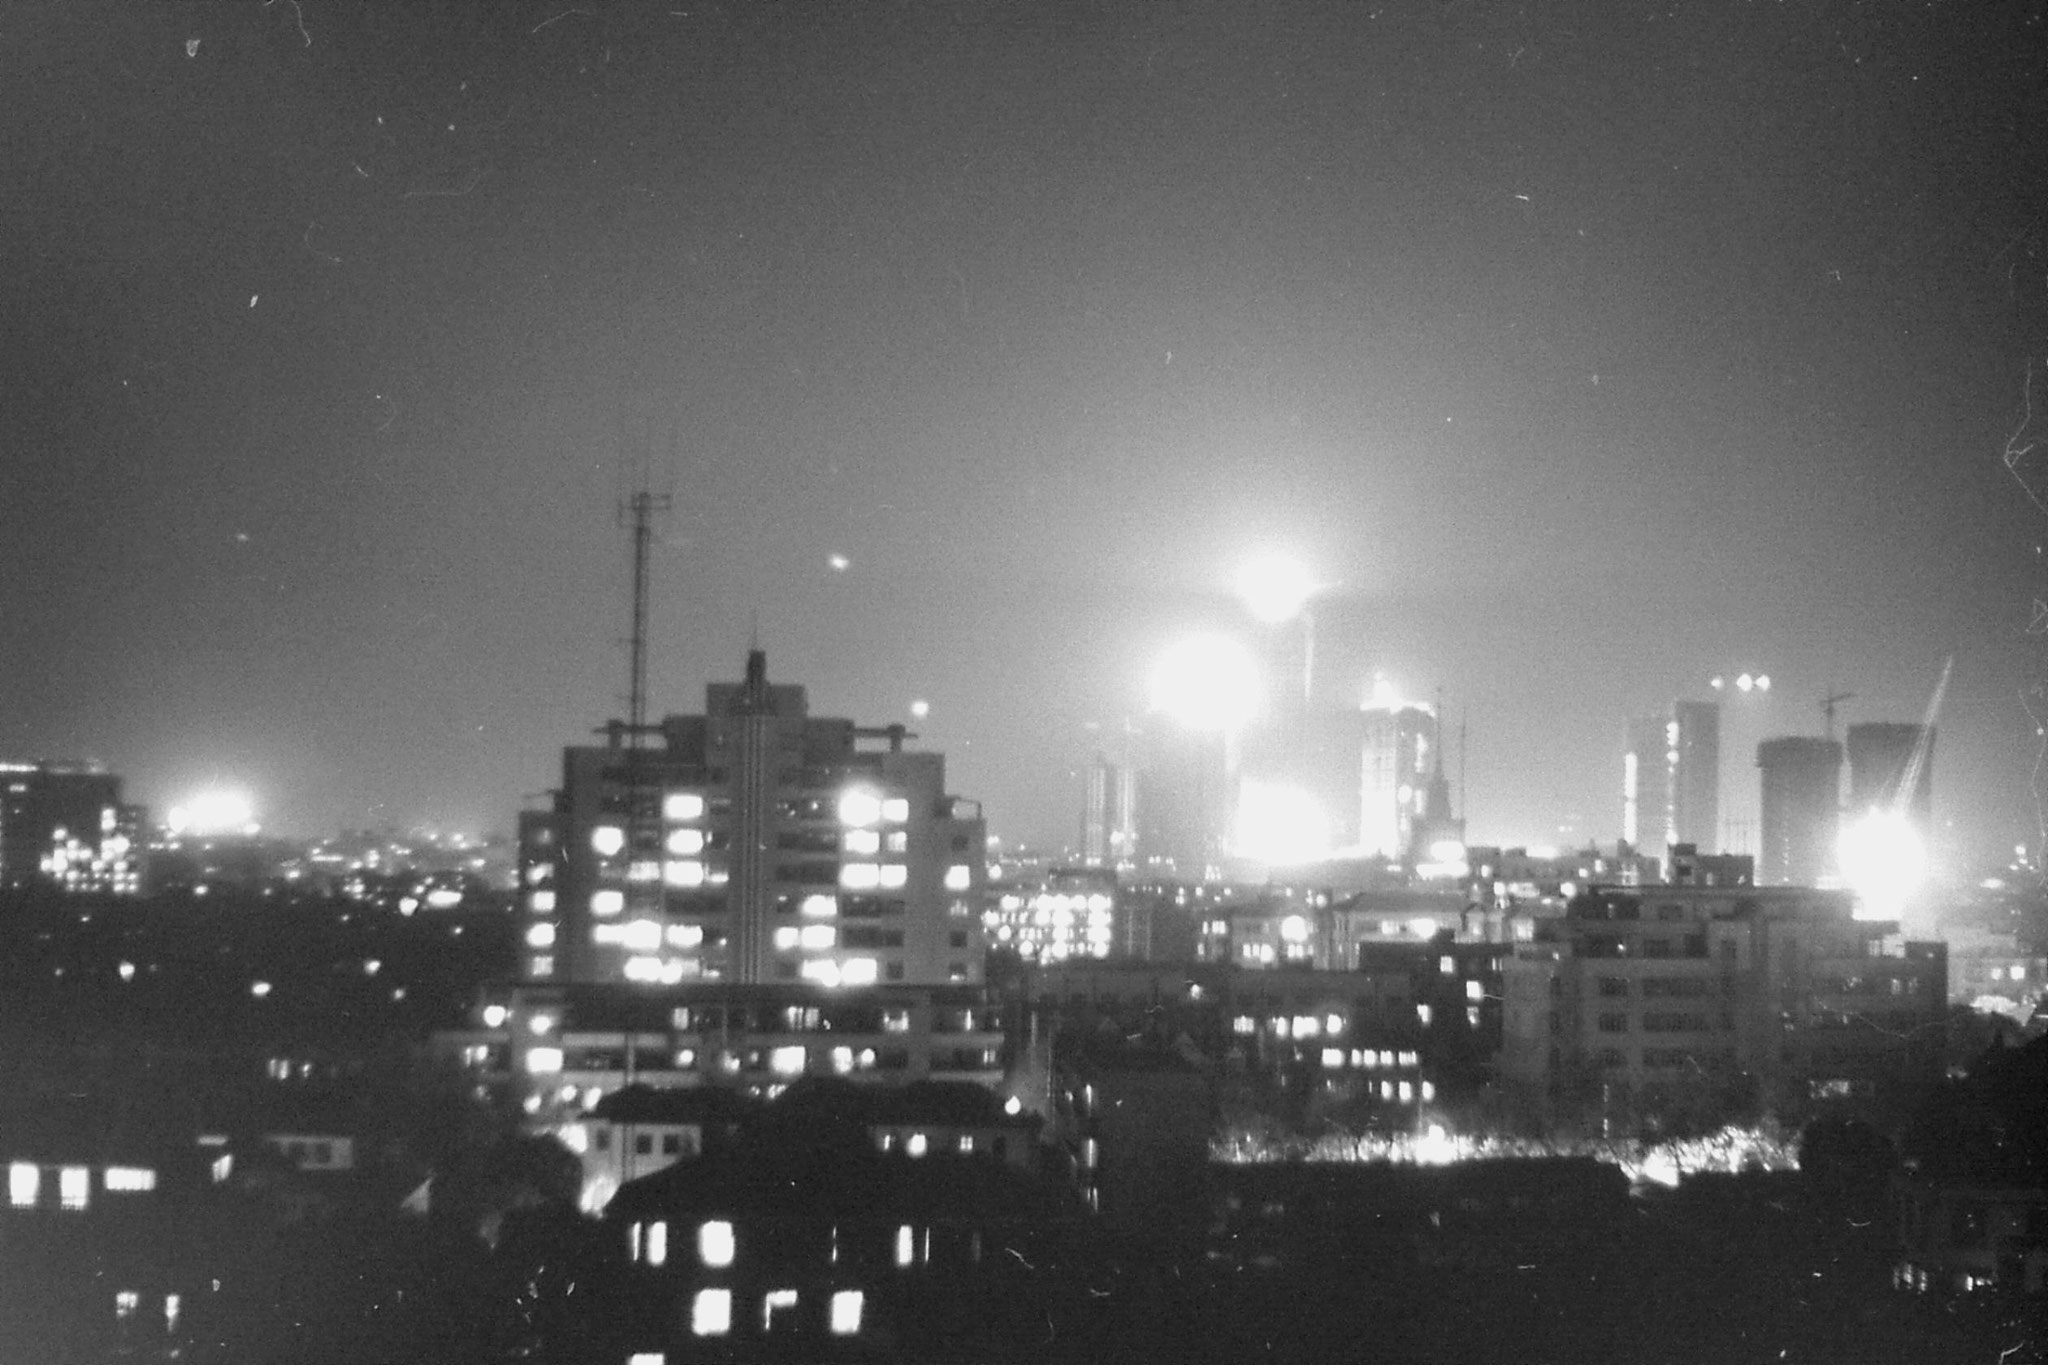 15/12/1988: 24: night view of Shanghai